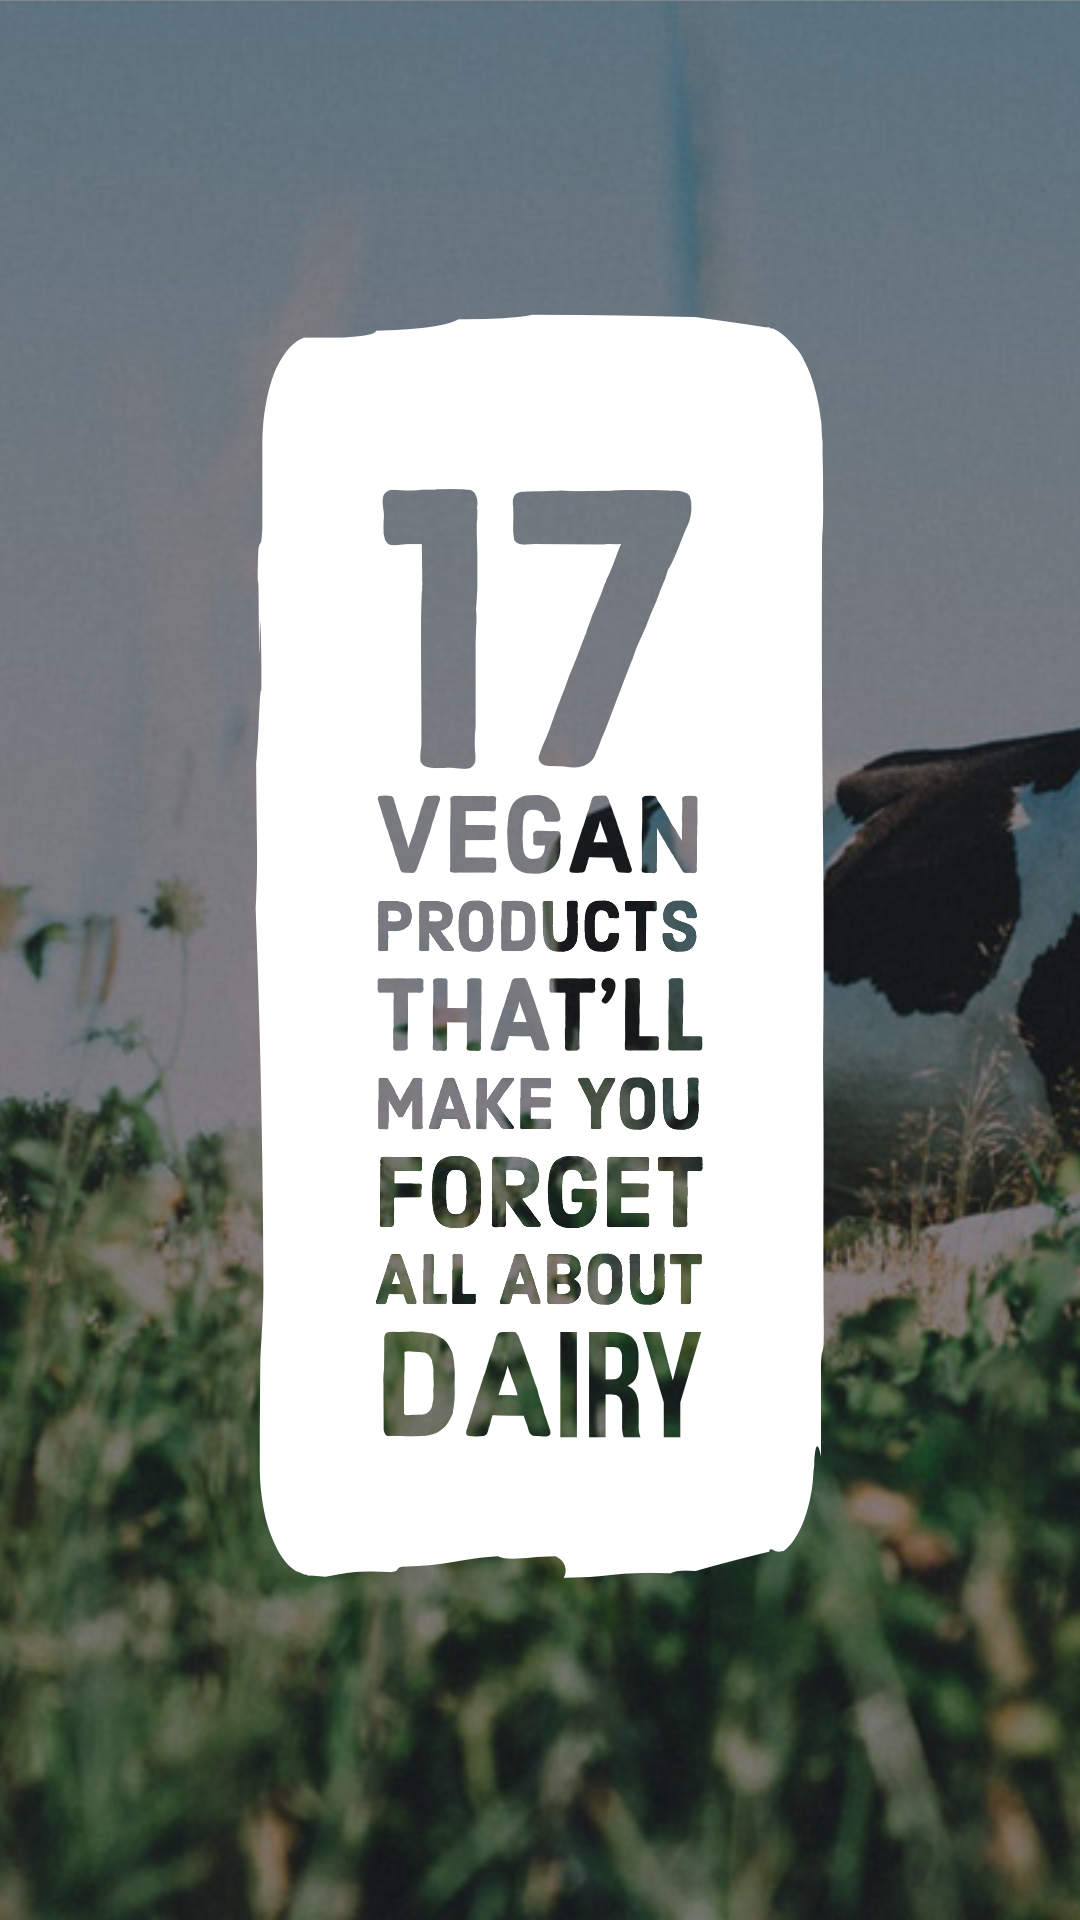 17 Vegan Products That'll Make You Forget All About Dairy